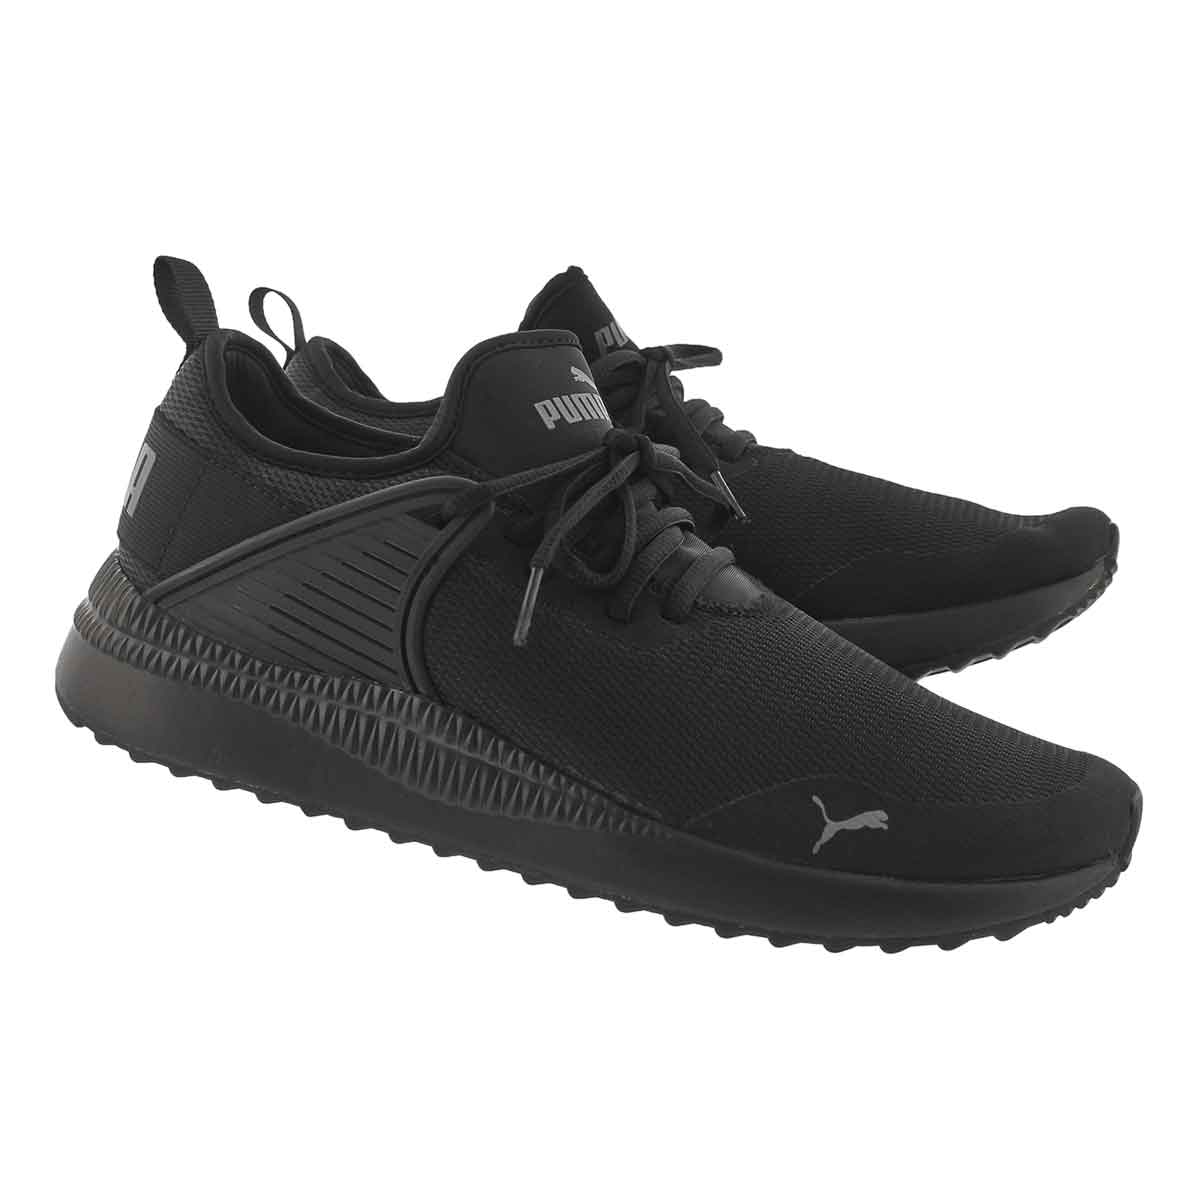 Mns Pacer Next Cage black sneaker